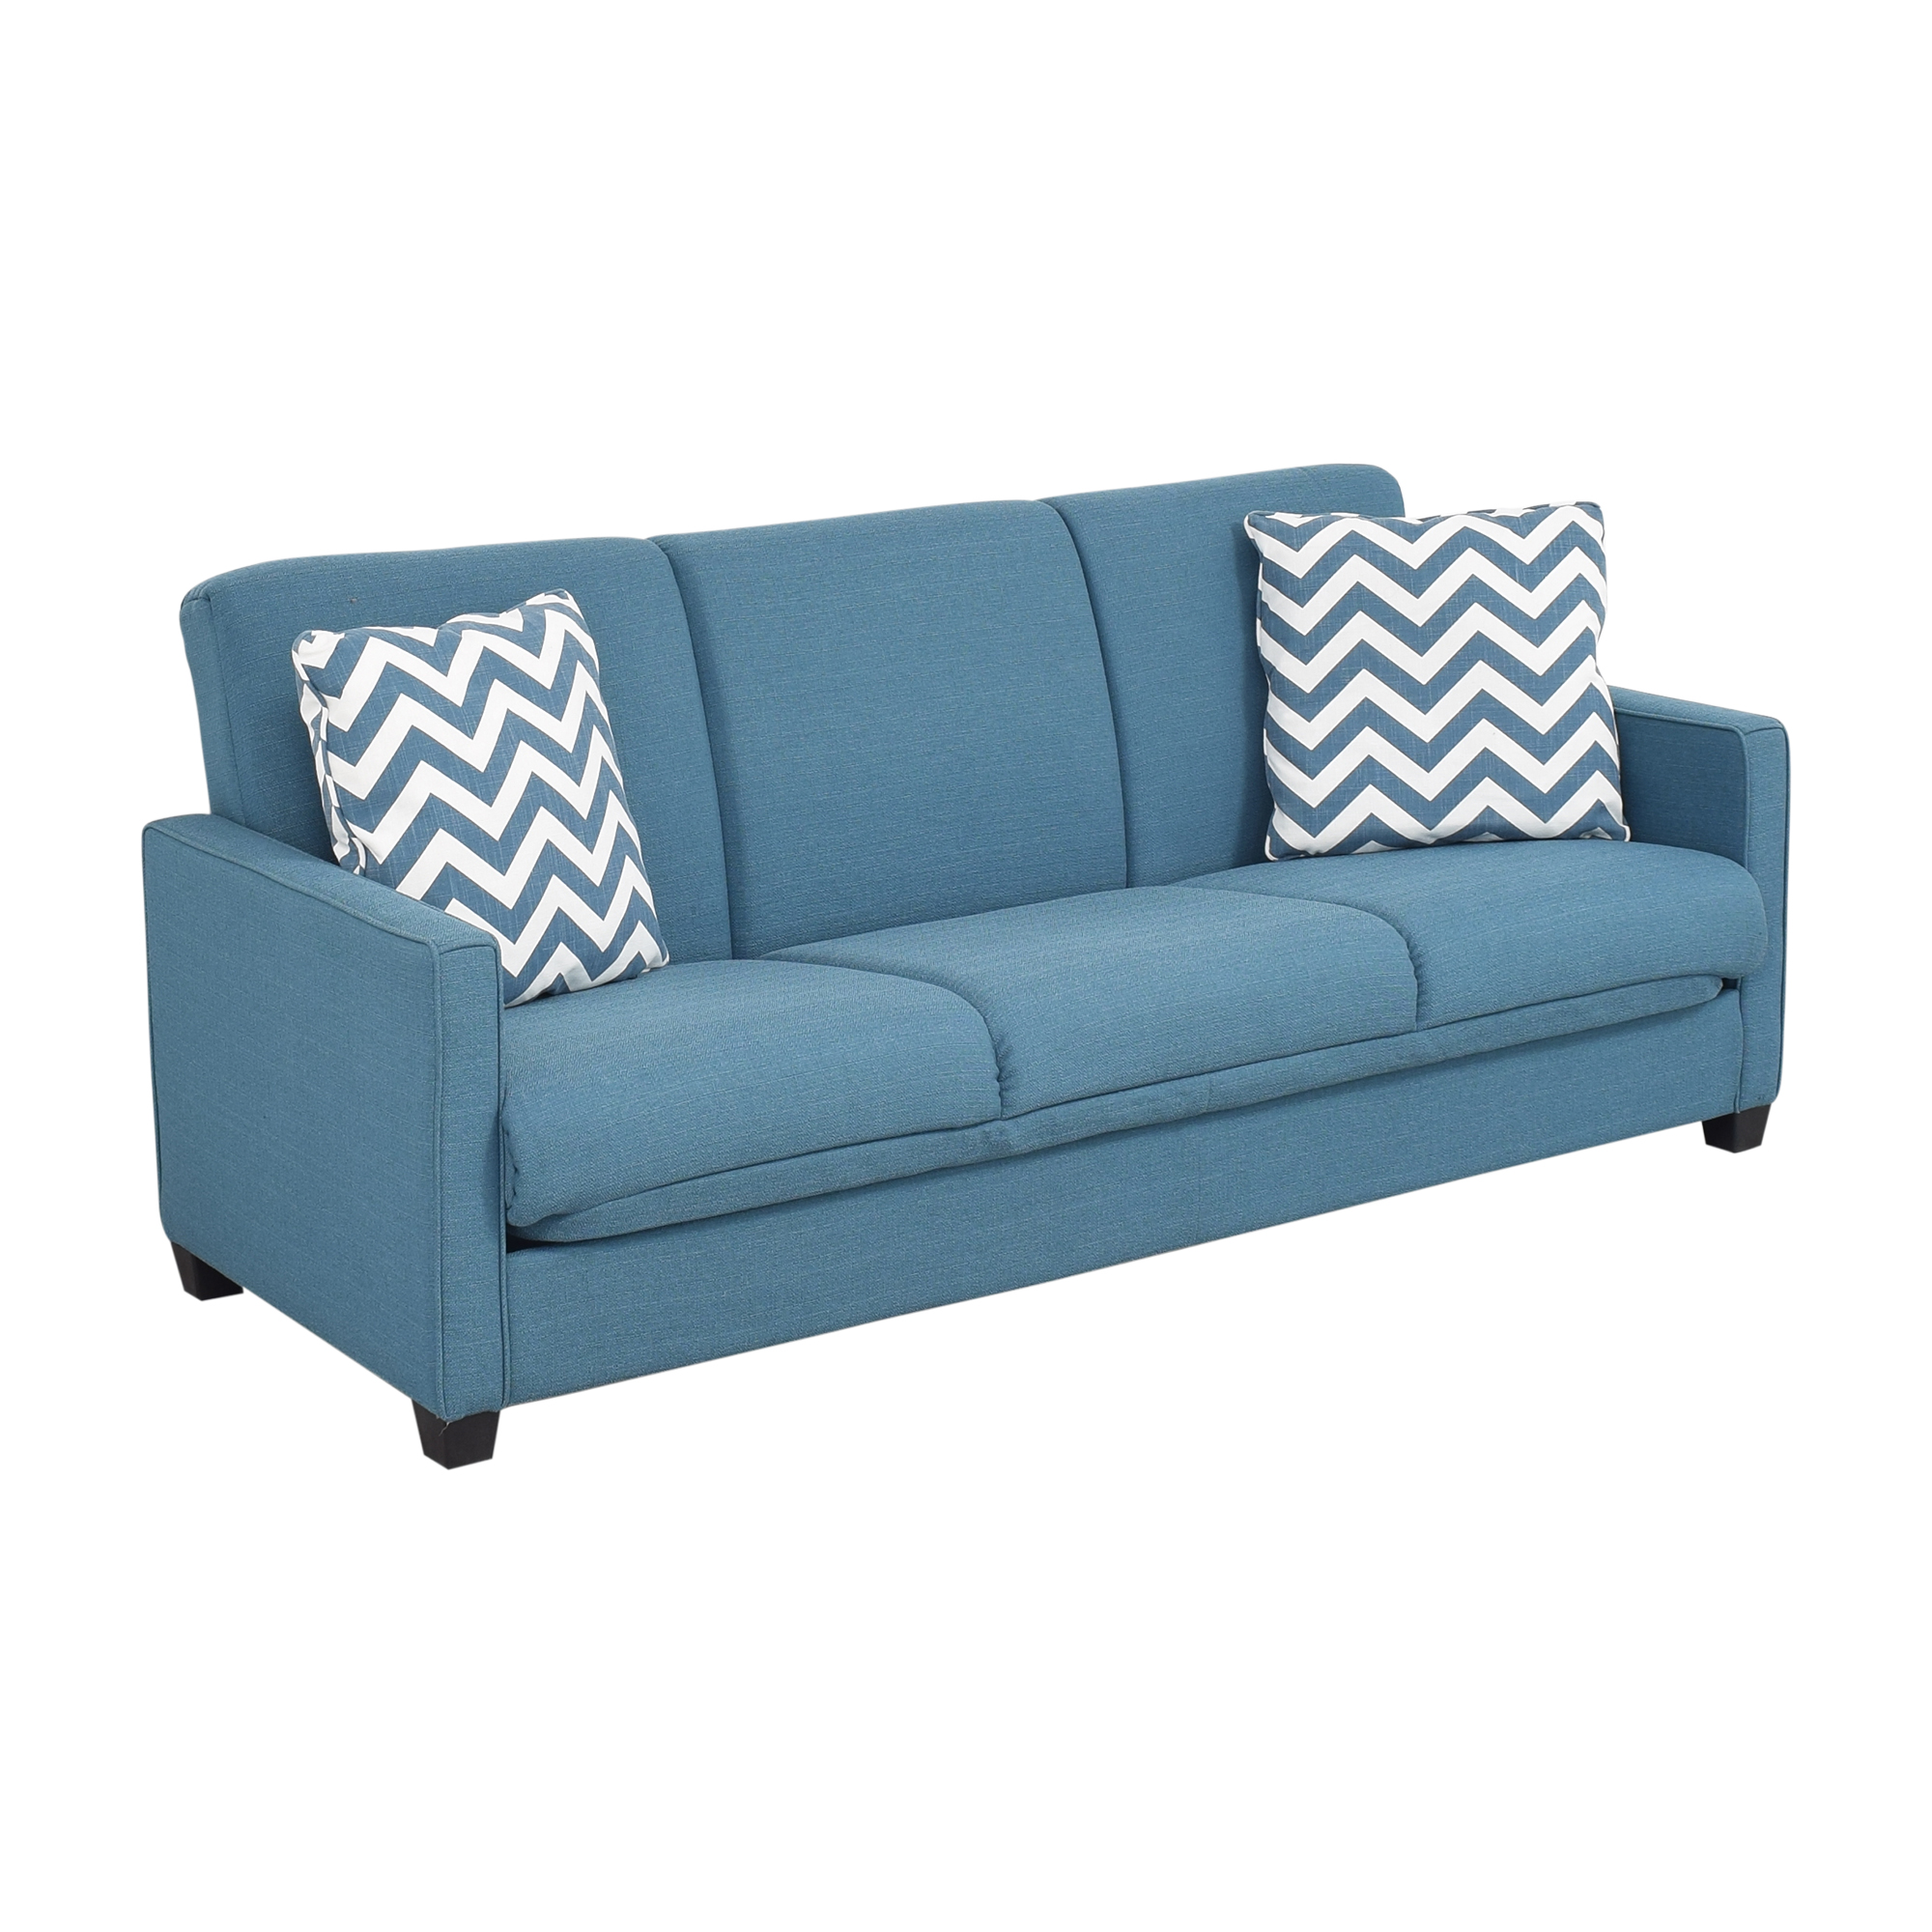 shop Wayfair Braden Studio Swiger Convertible Sleeper Sofa Wayfair